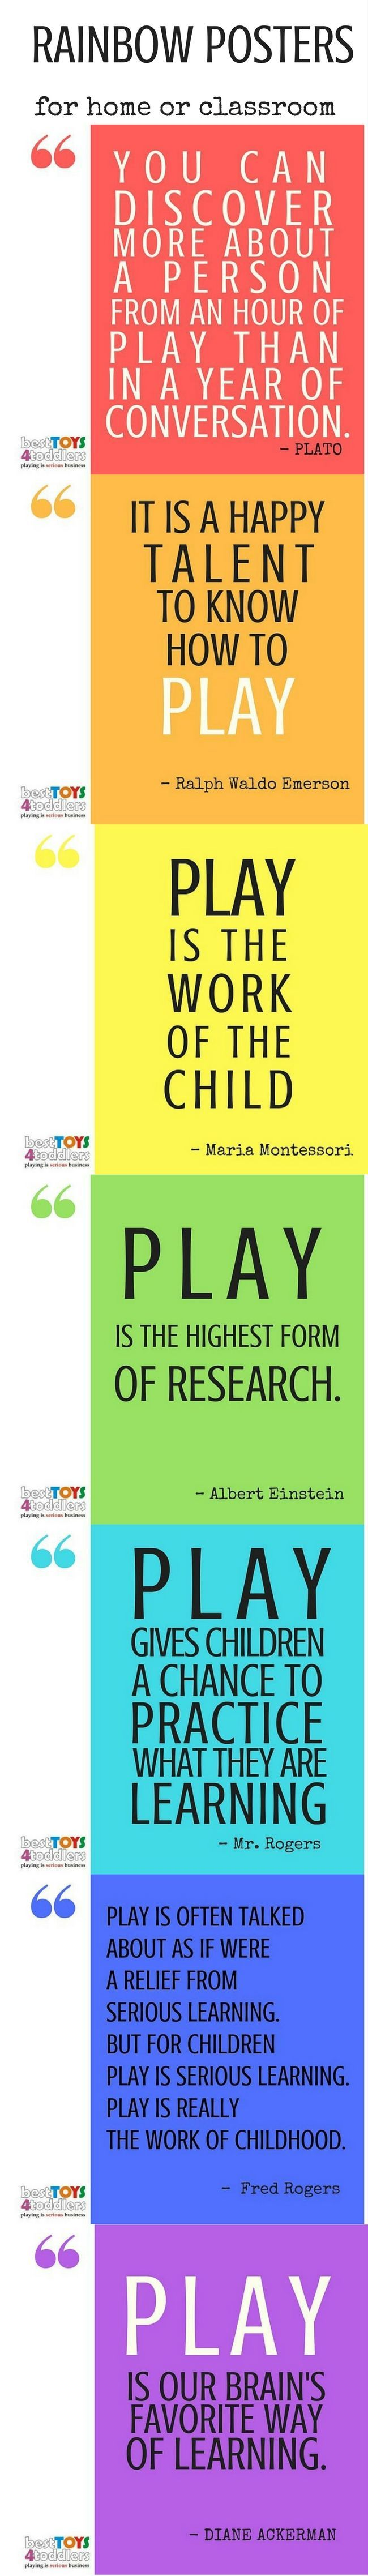 Free download - Rainbow posters with quotes about the importance of play in an early childhood (preschool, kindergarten or homeschool)